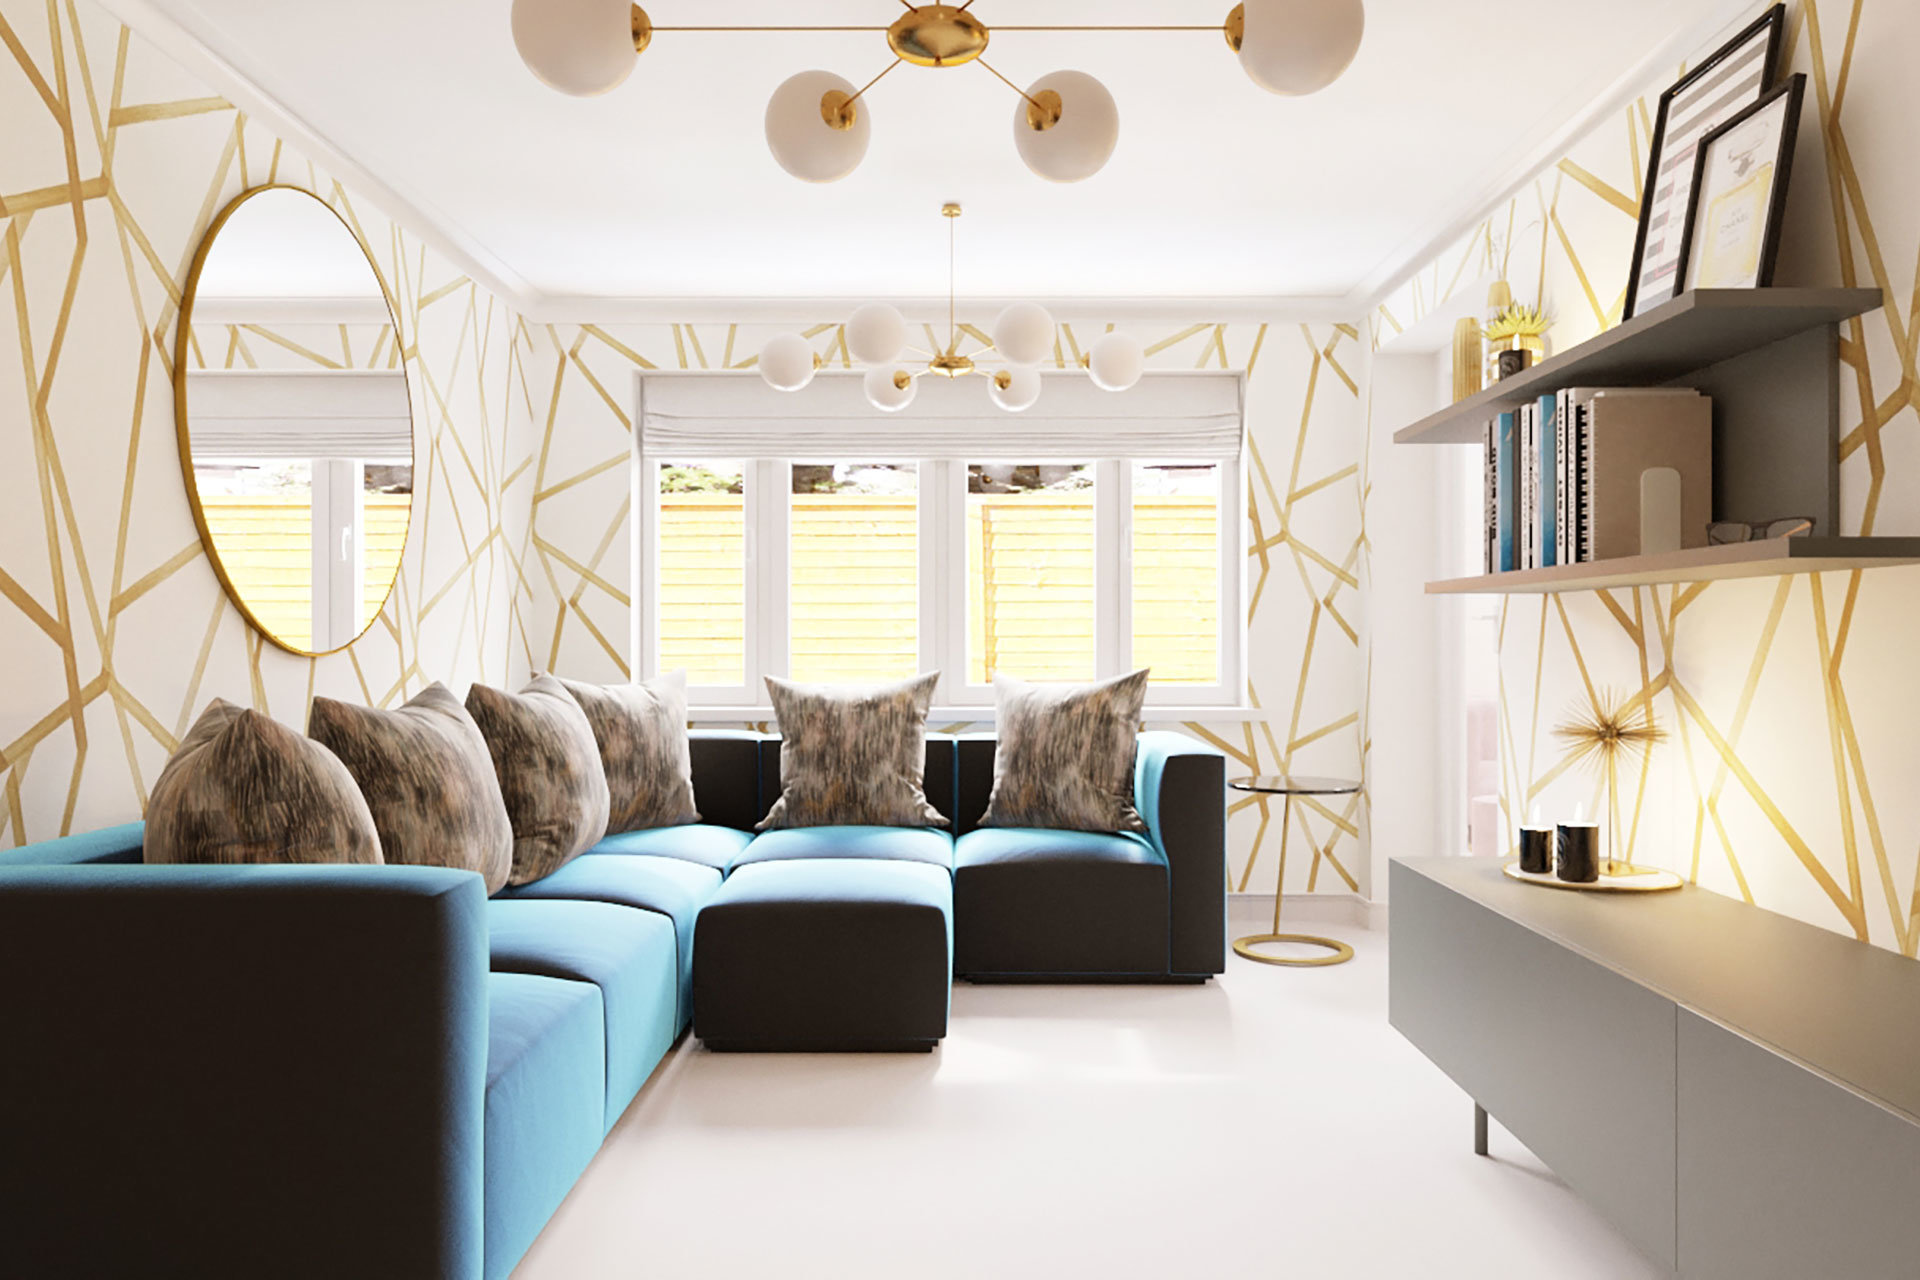 Peter-Staunton-Interior-Design---Royal-Leamington-Spa-Warwickshire-3D1